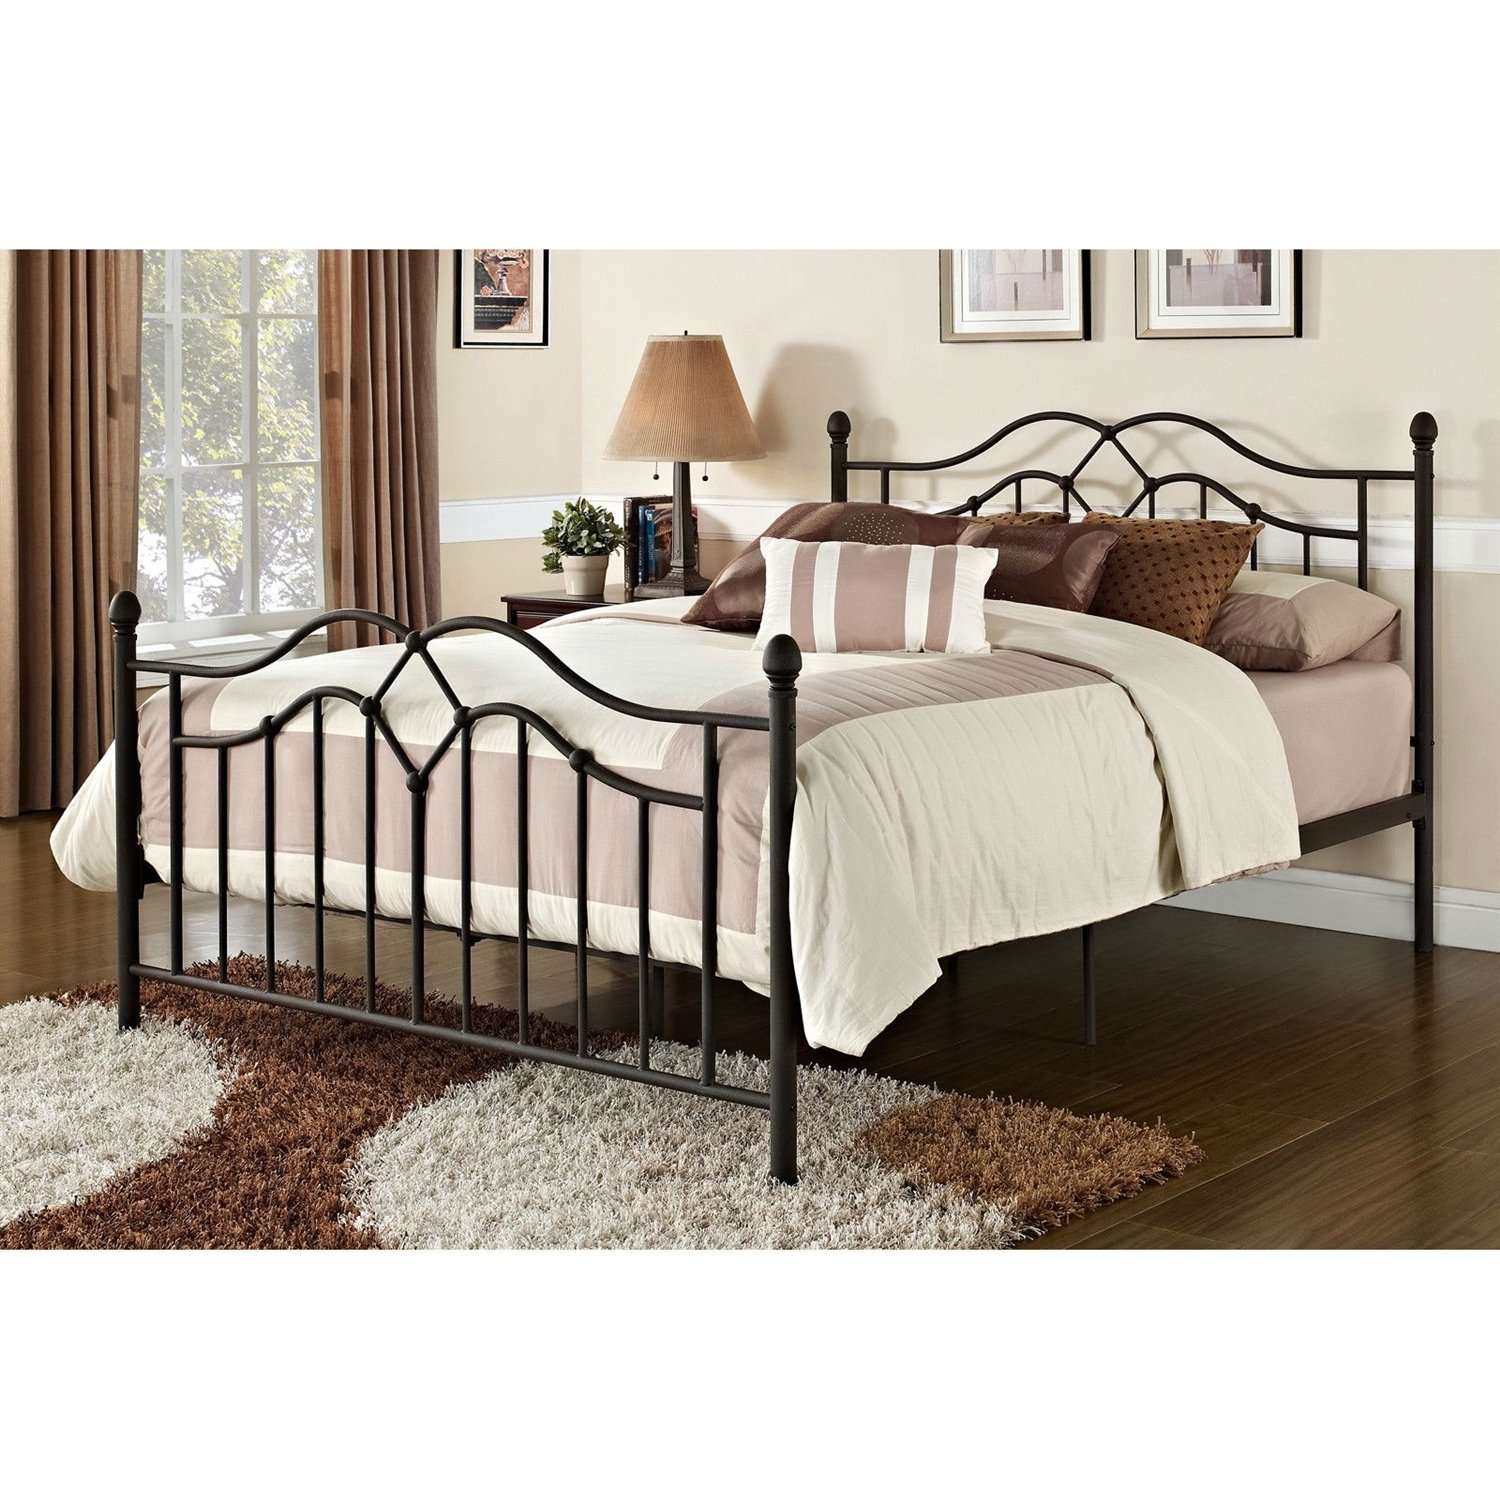 size Brushed Bronze Metal Bed with Headboard and Footboard